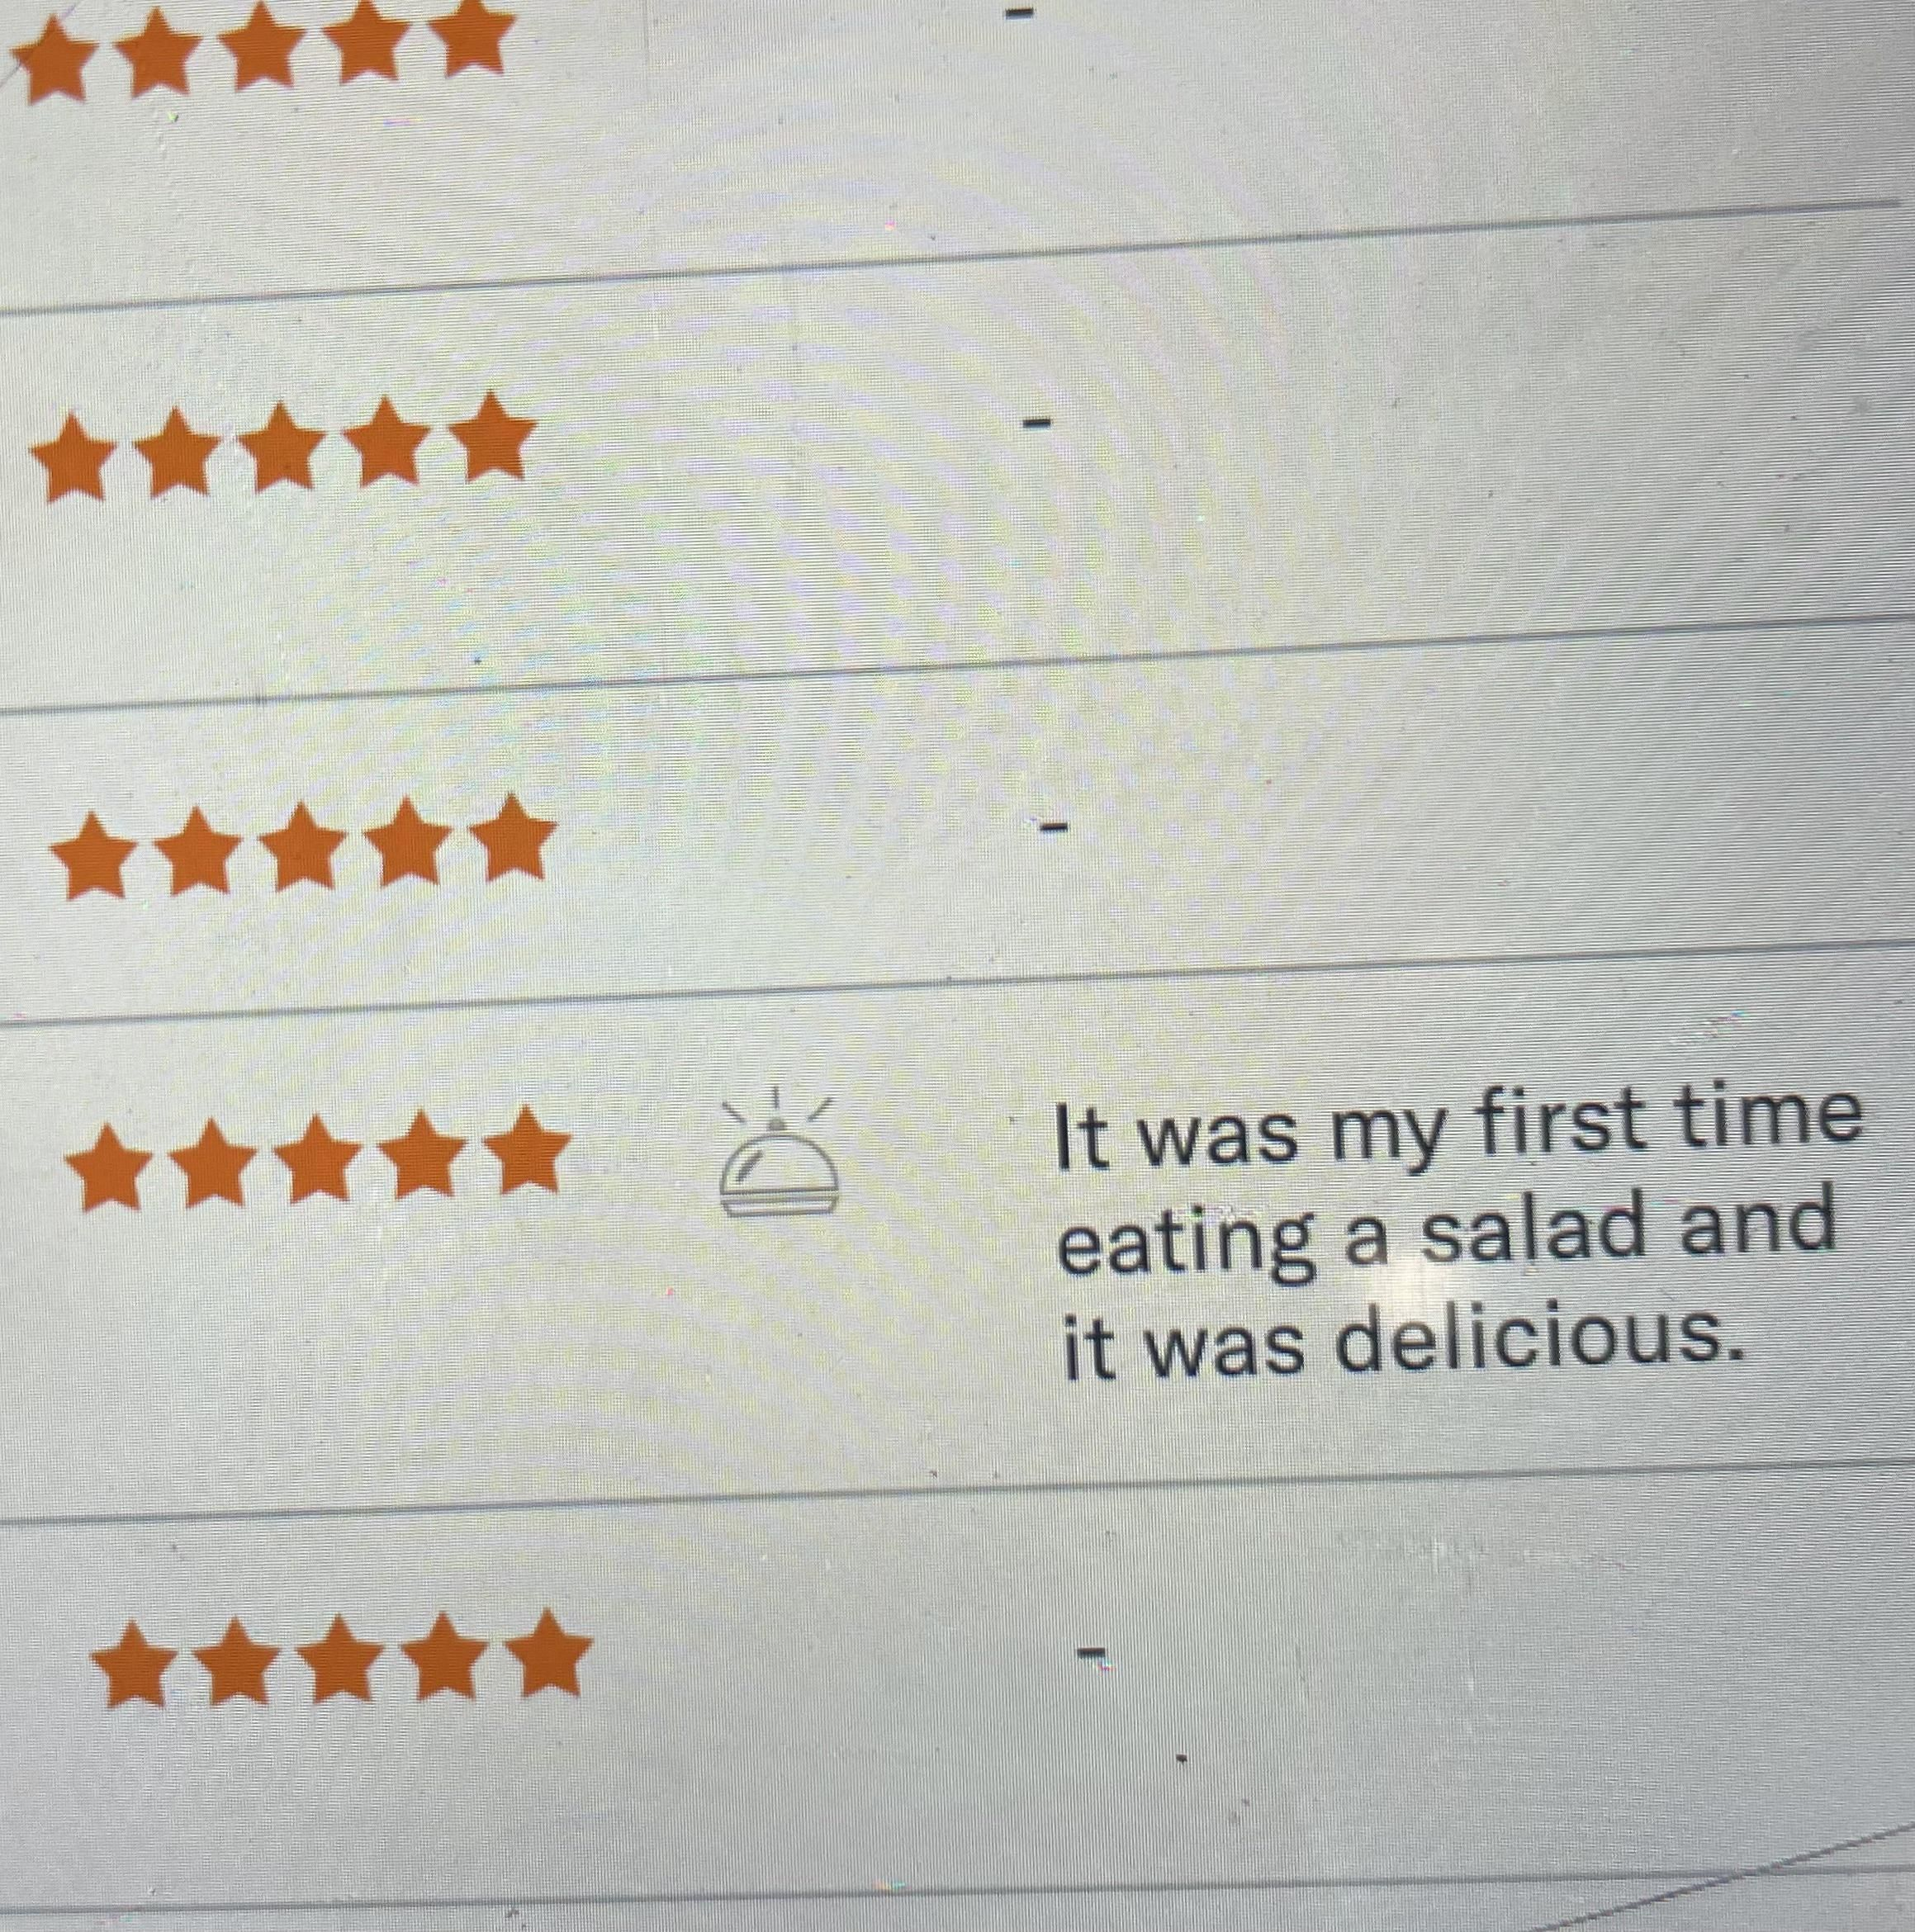 A review left at my restaurant.